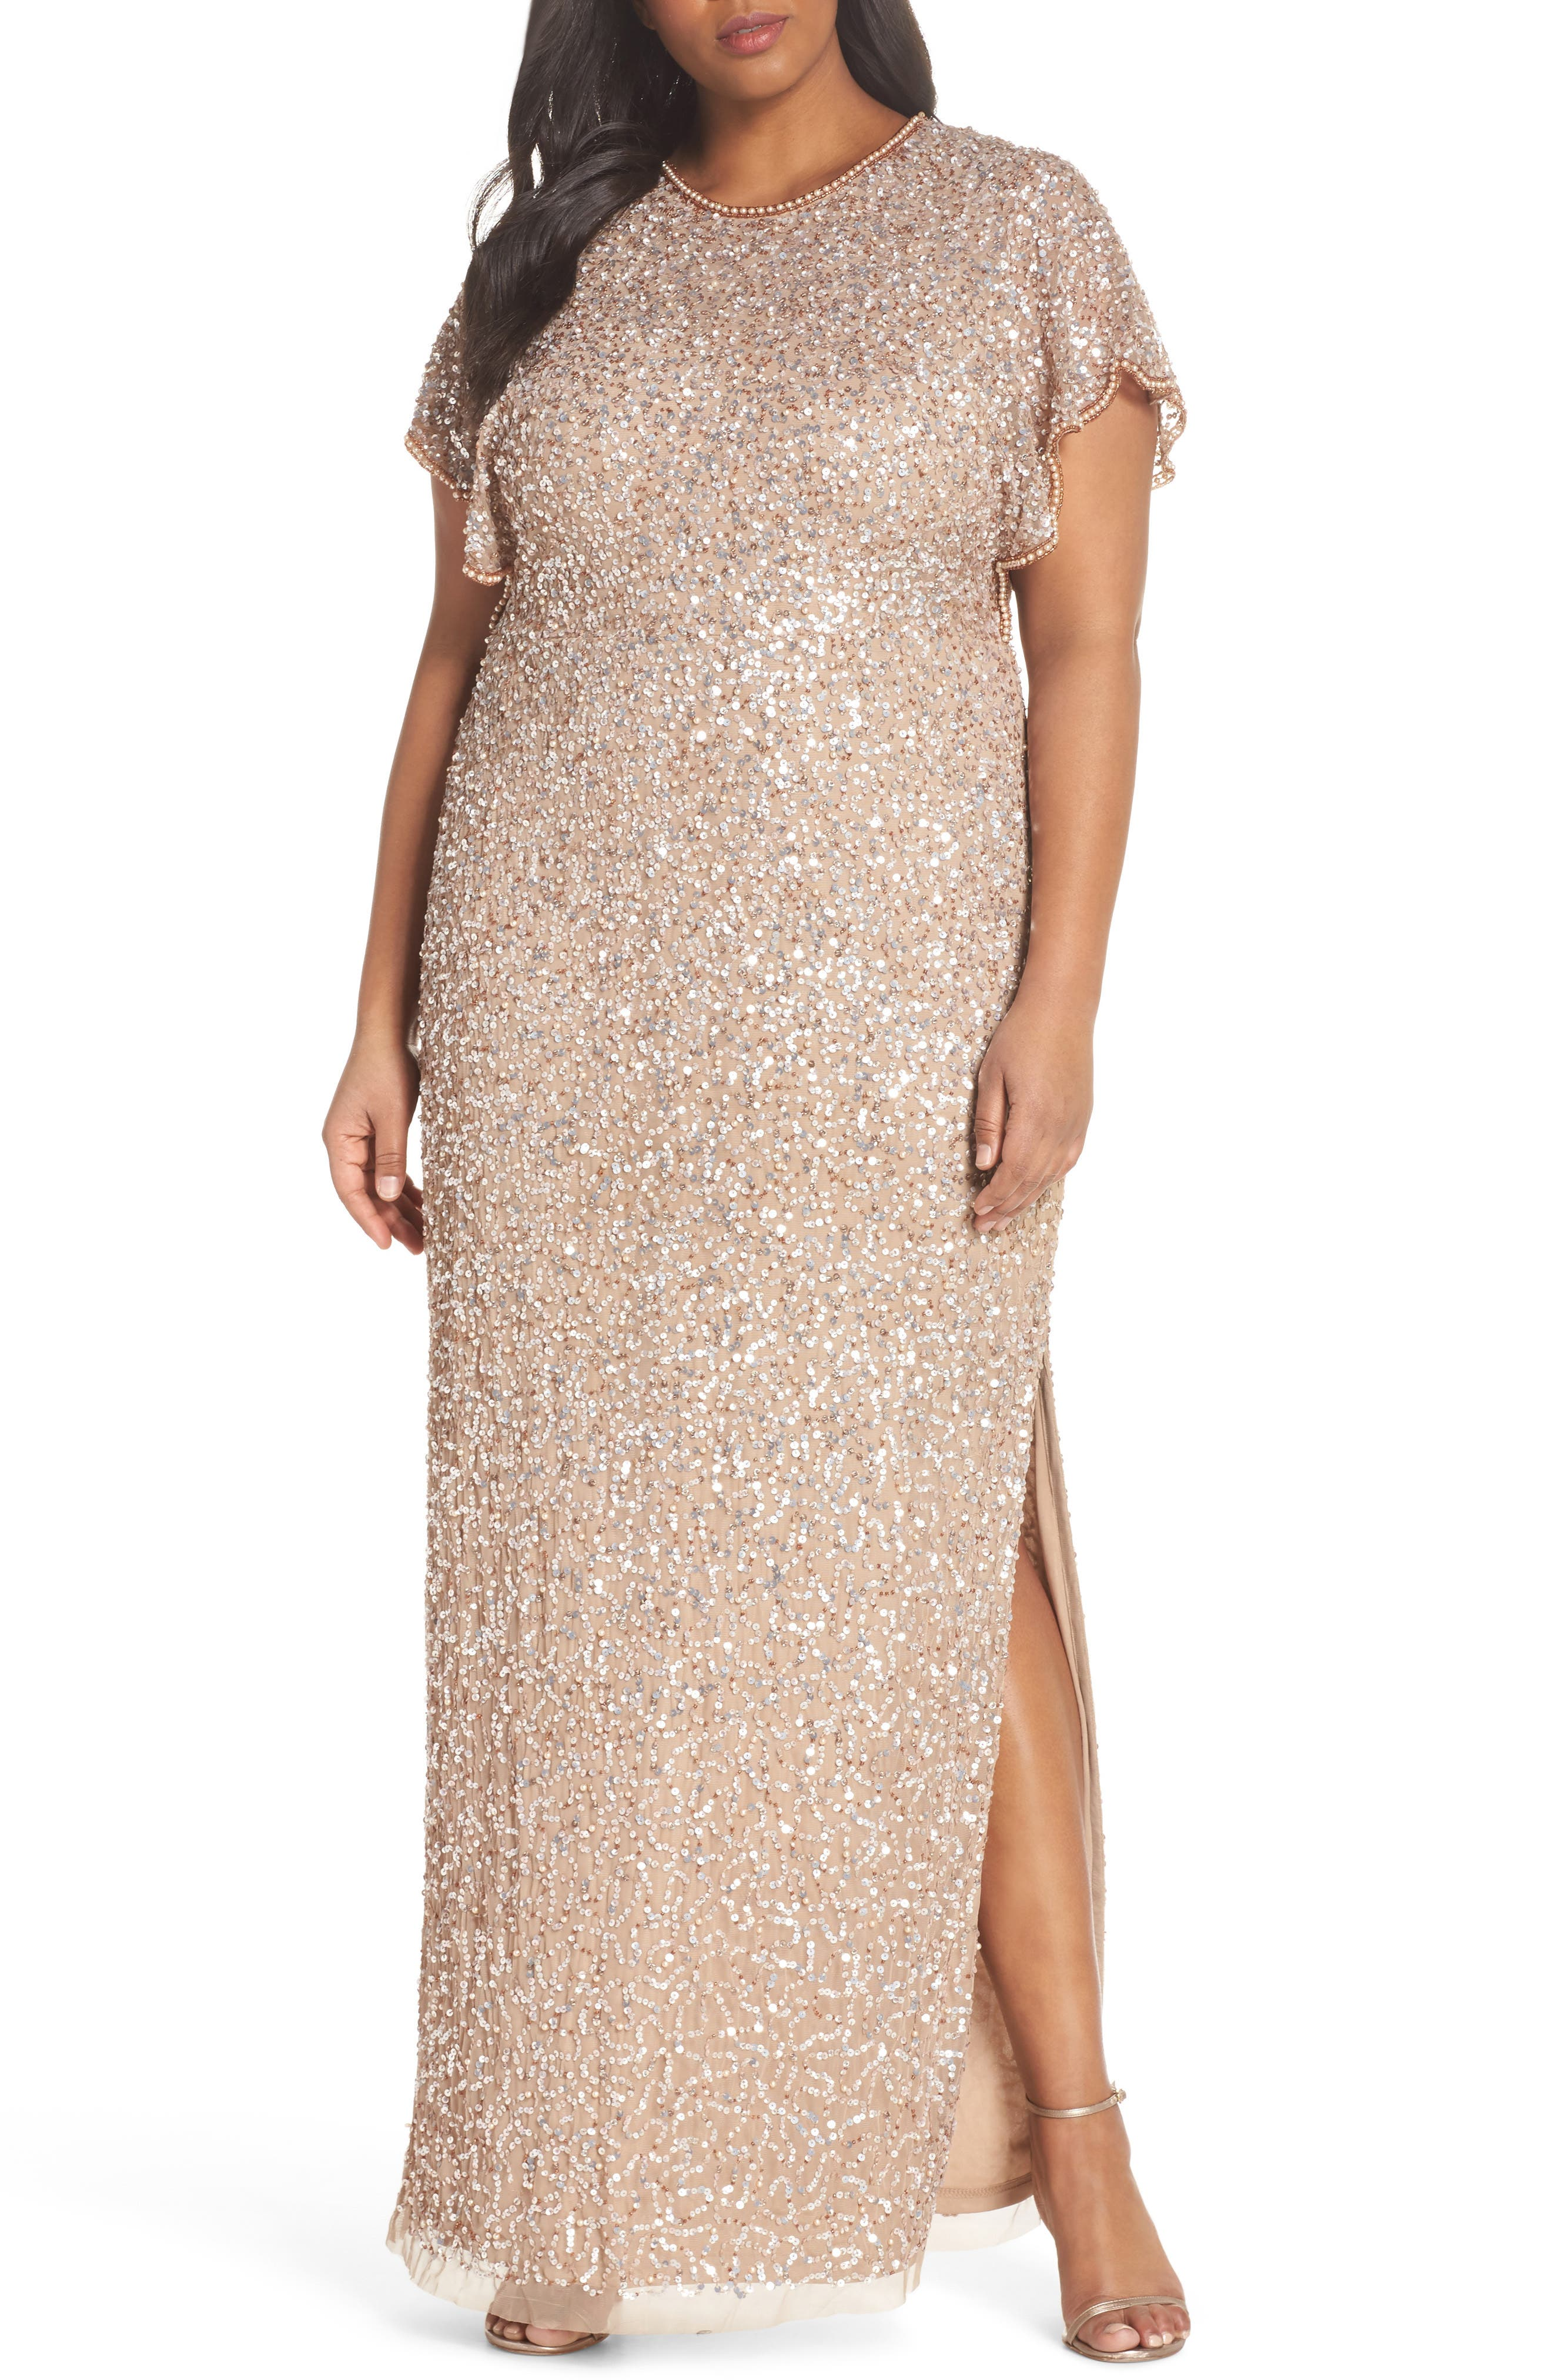 Alternate Image 1 Selected - Adrianna Papell Flutter Sleeve Beaded Sequin Gown (Plus Size)